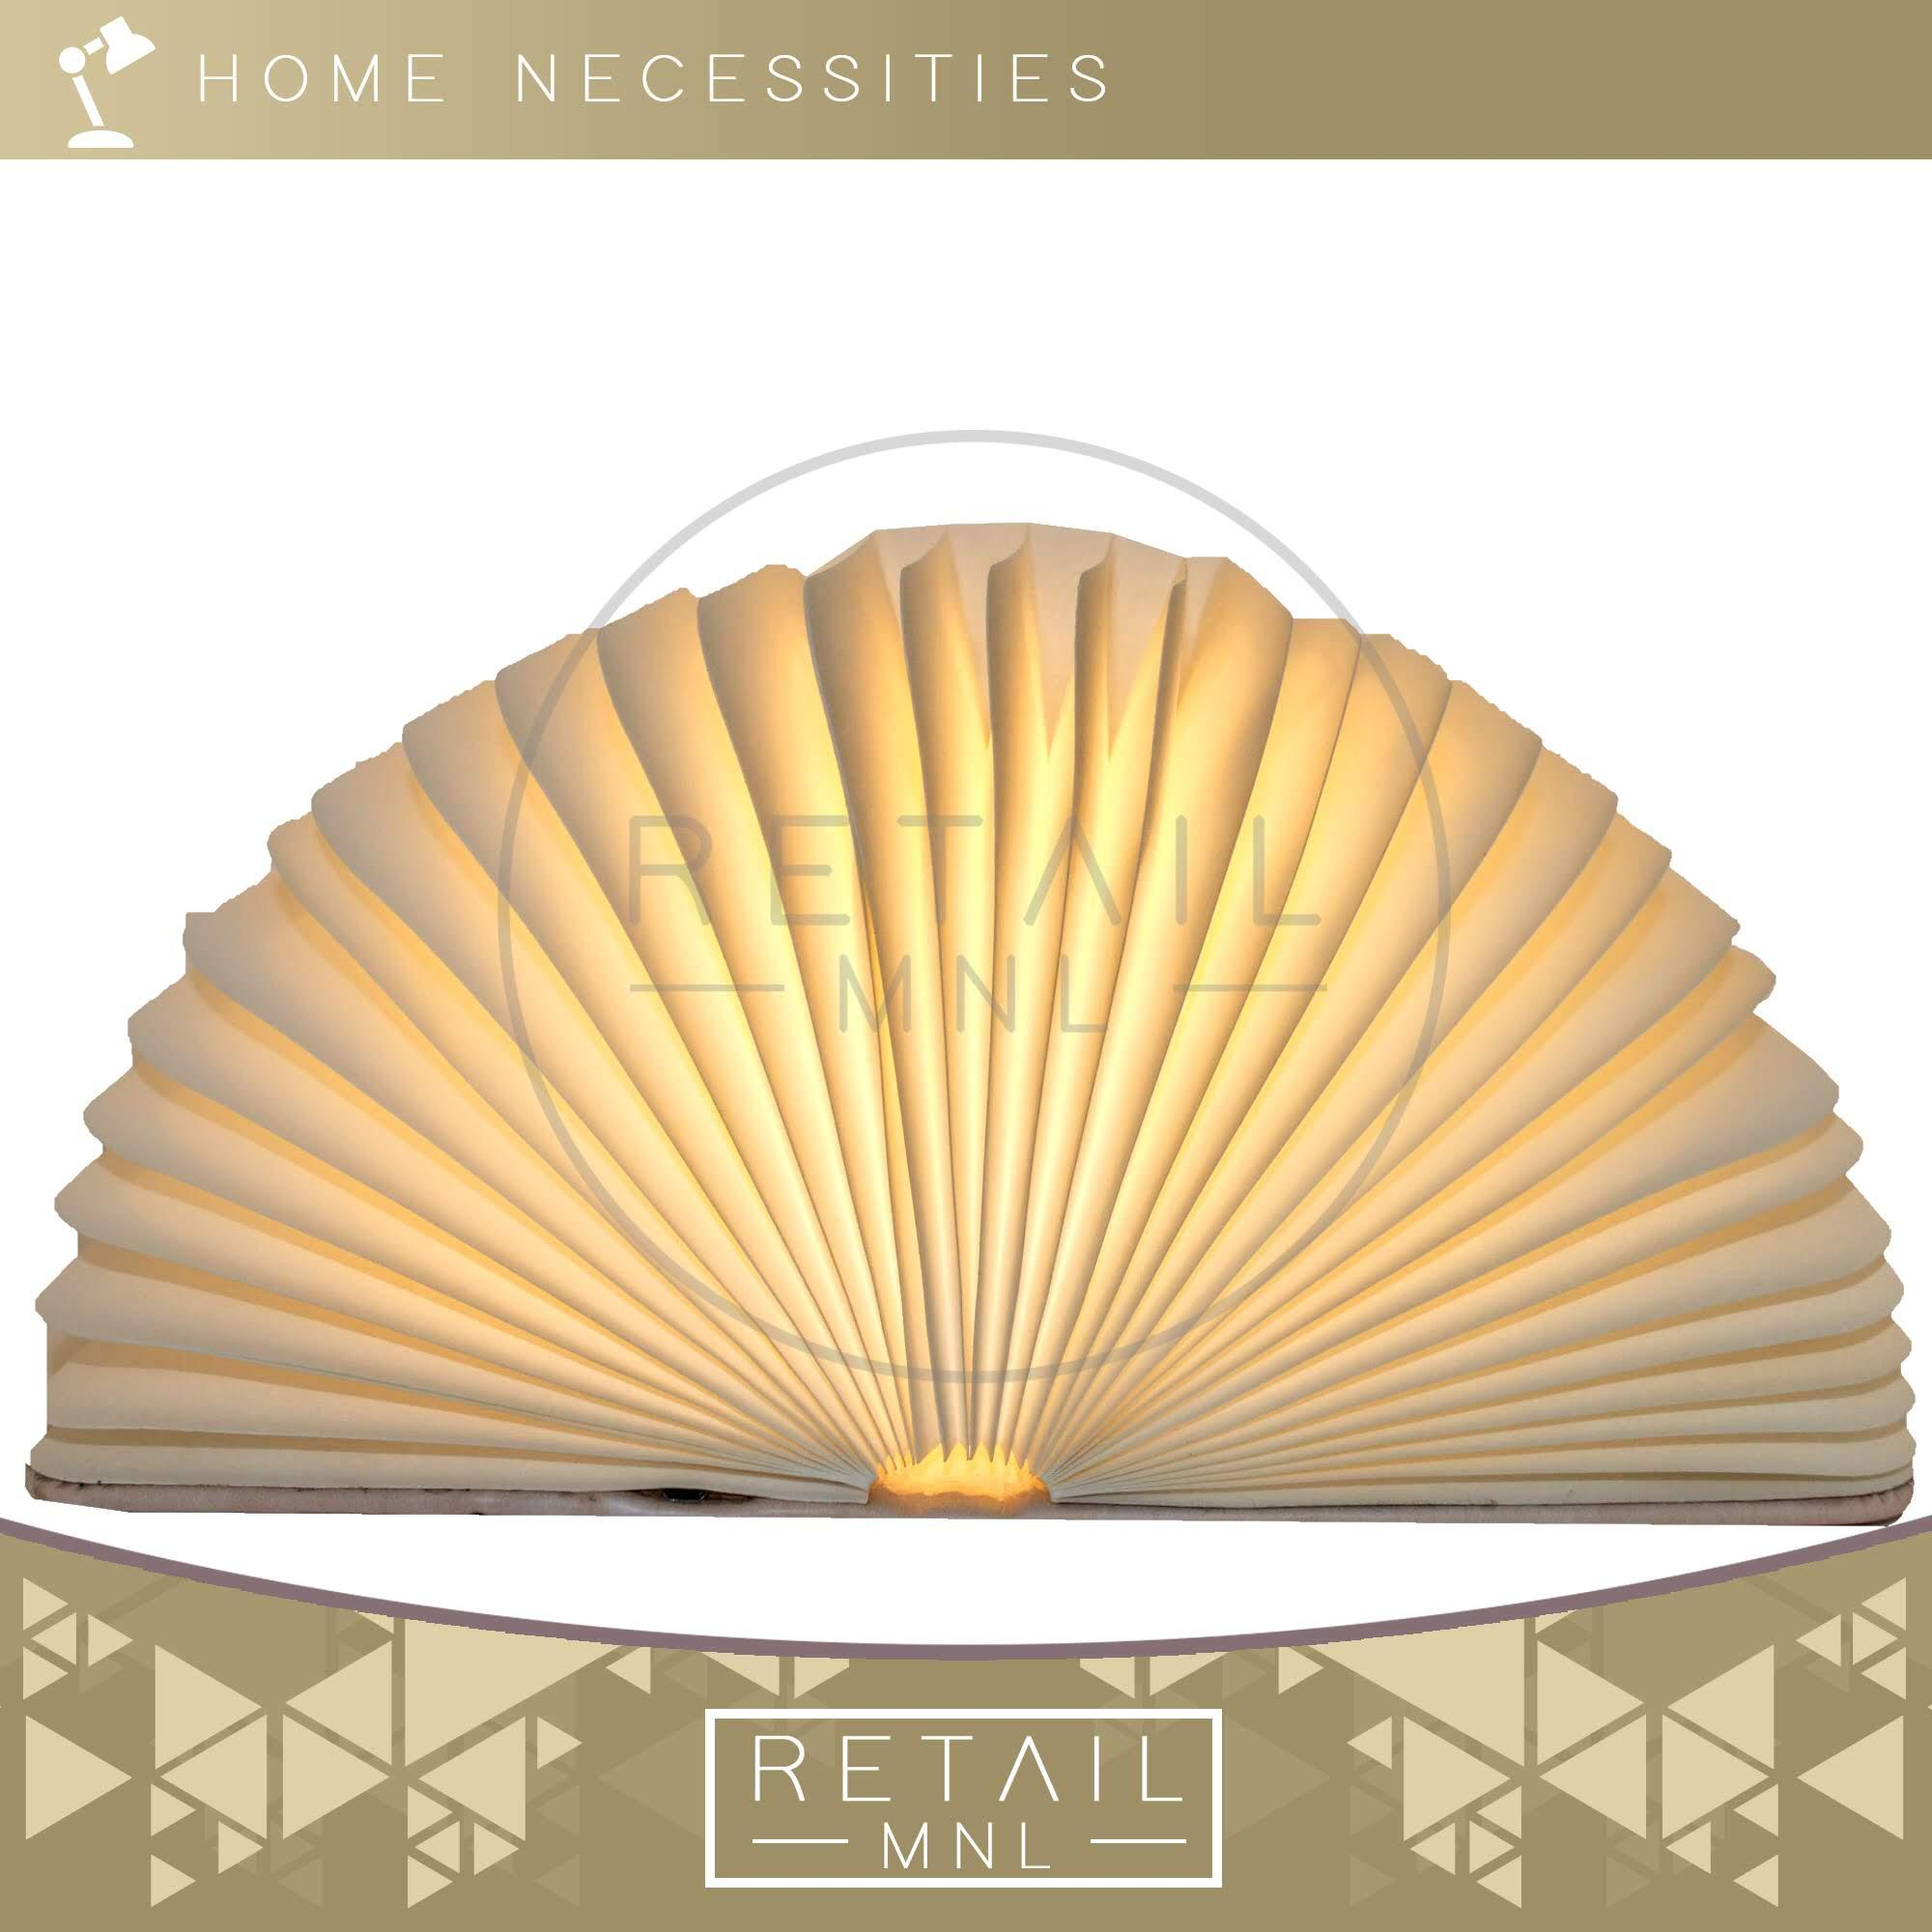 Retailmnl Wooden Grain Folding Book Lamp Magnetic Led Portable Usb Rechargeable Luminous- White By Retail Mnl.